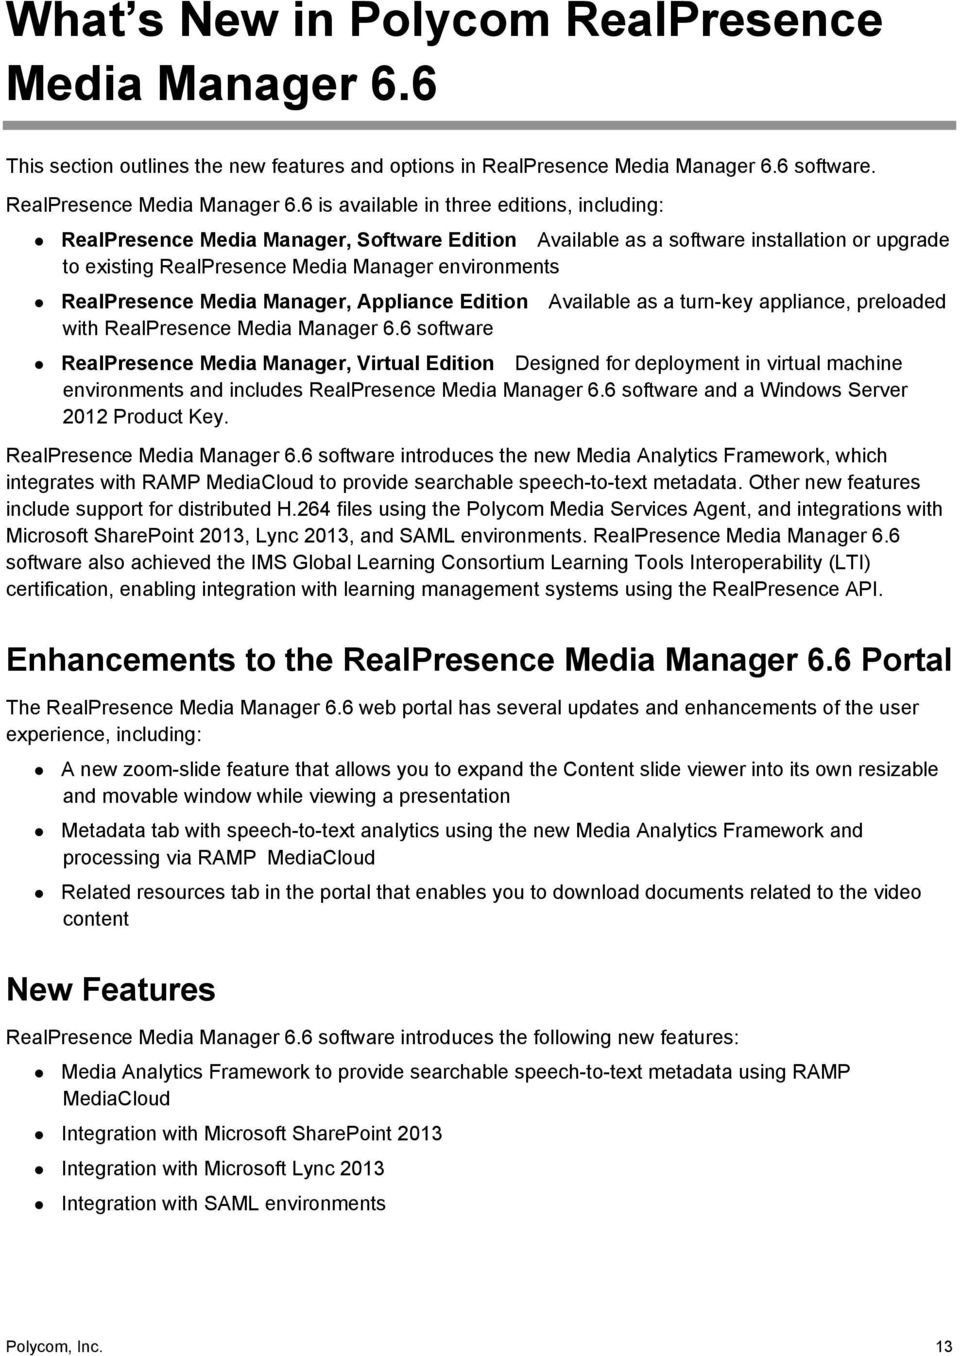 6 software. RealPresence Media Manager 6.